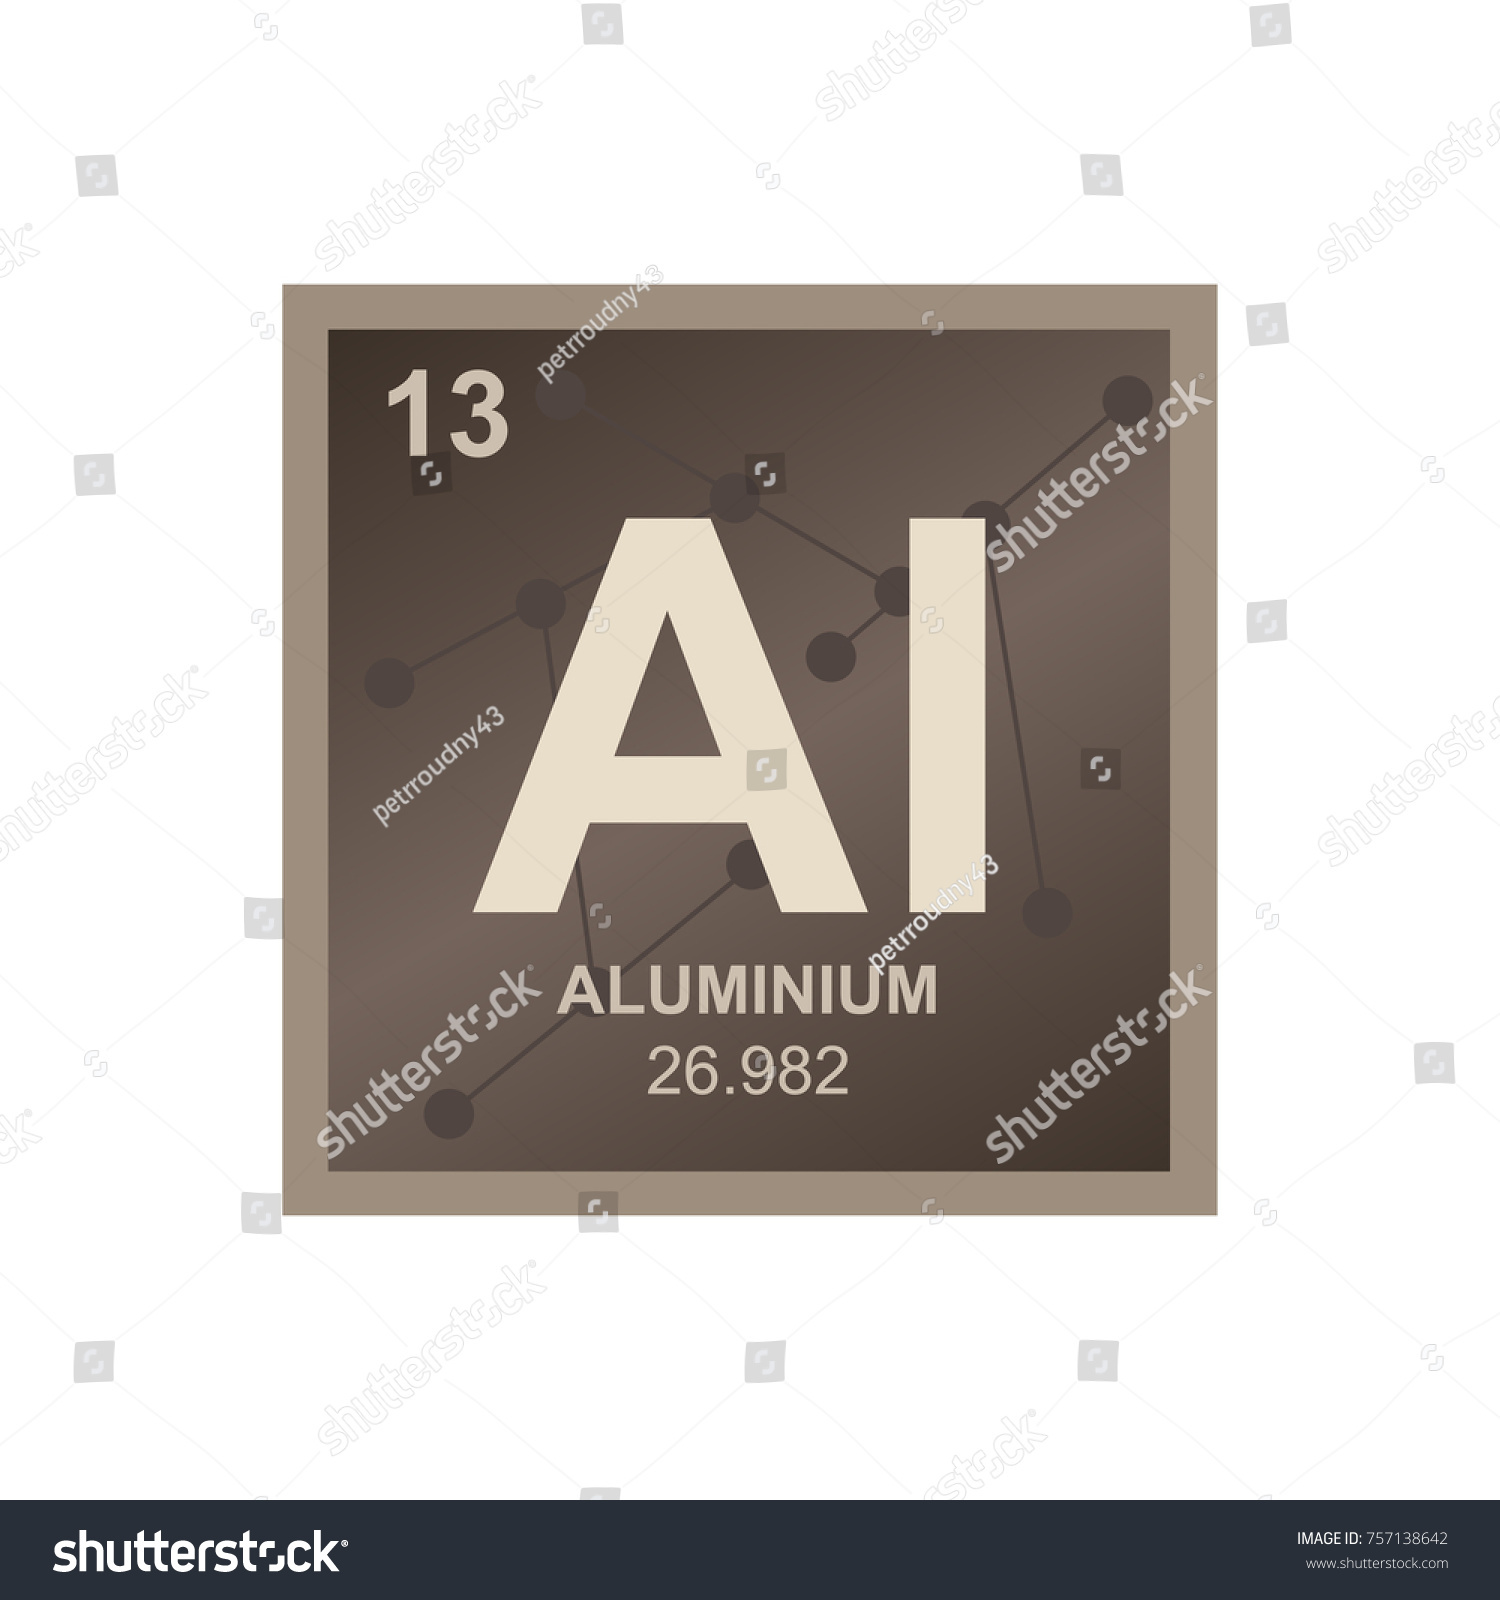 Aluminium symbol periodic table gallery periodic table images vector symbol aluminium periodic table elements stock vector vector symbol of aluminium from the periodic table gamestrikefo Images